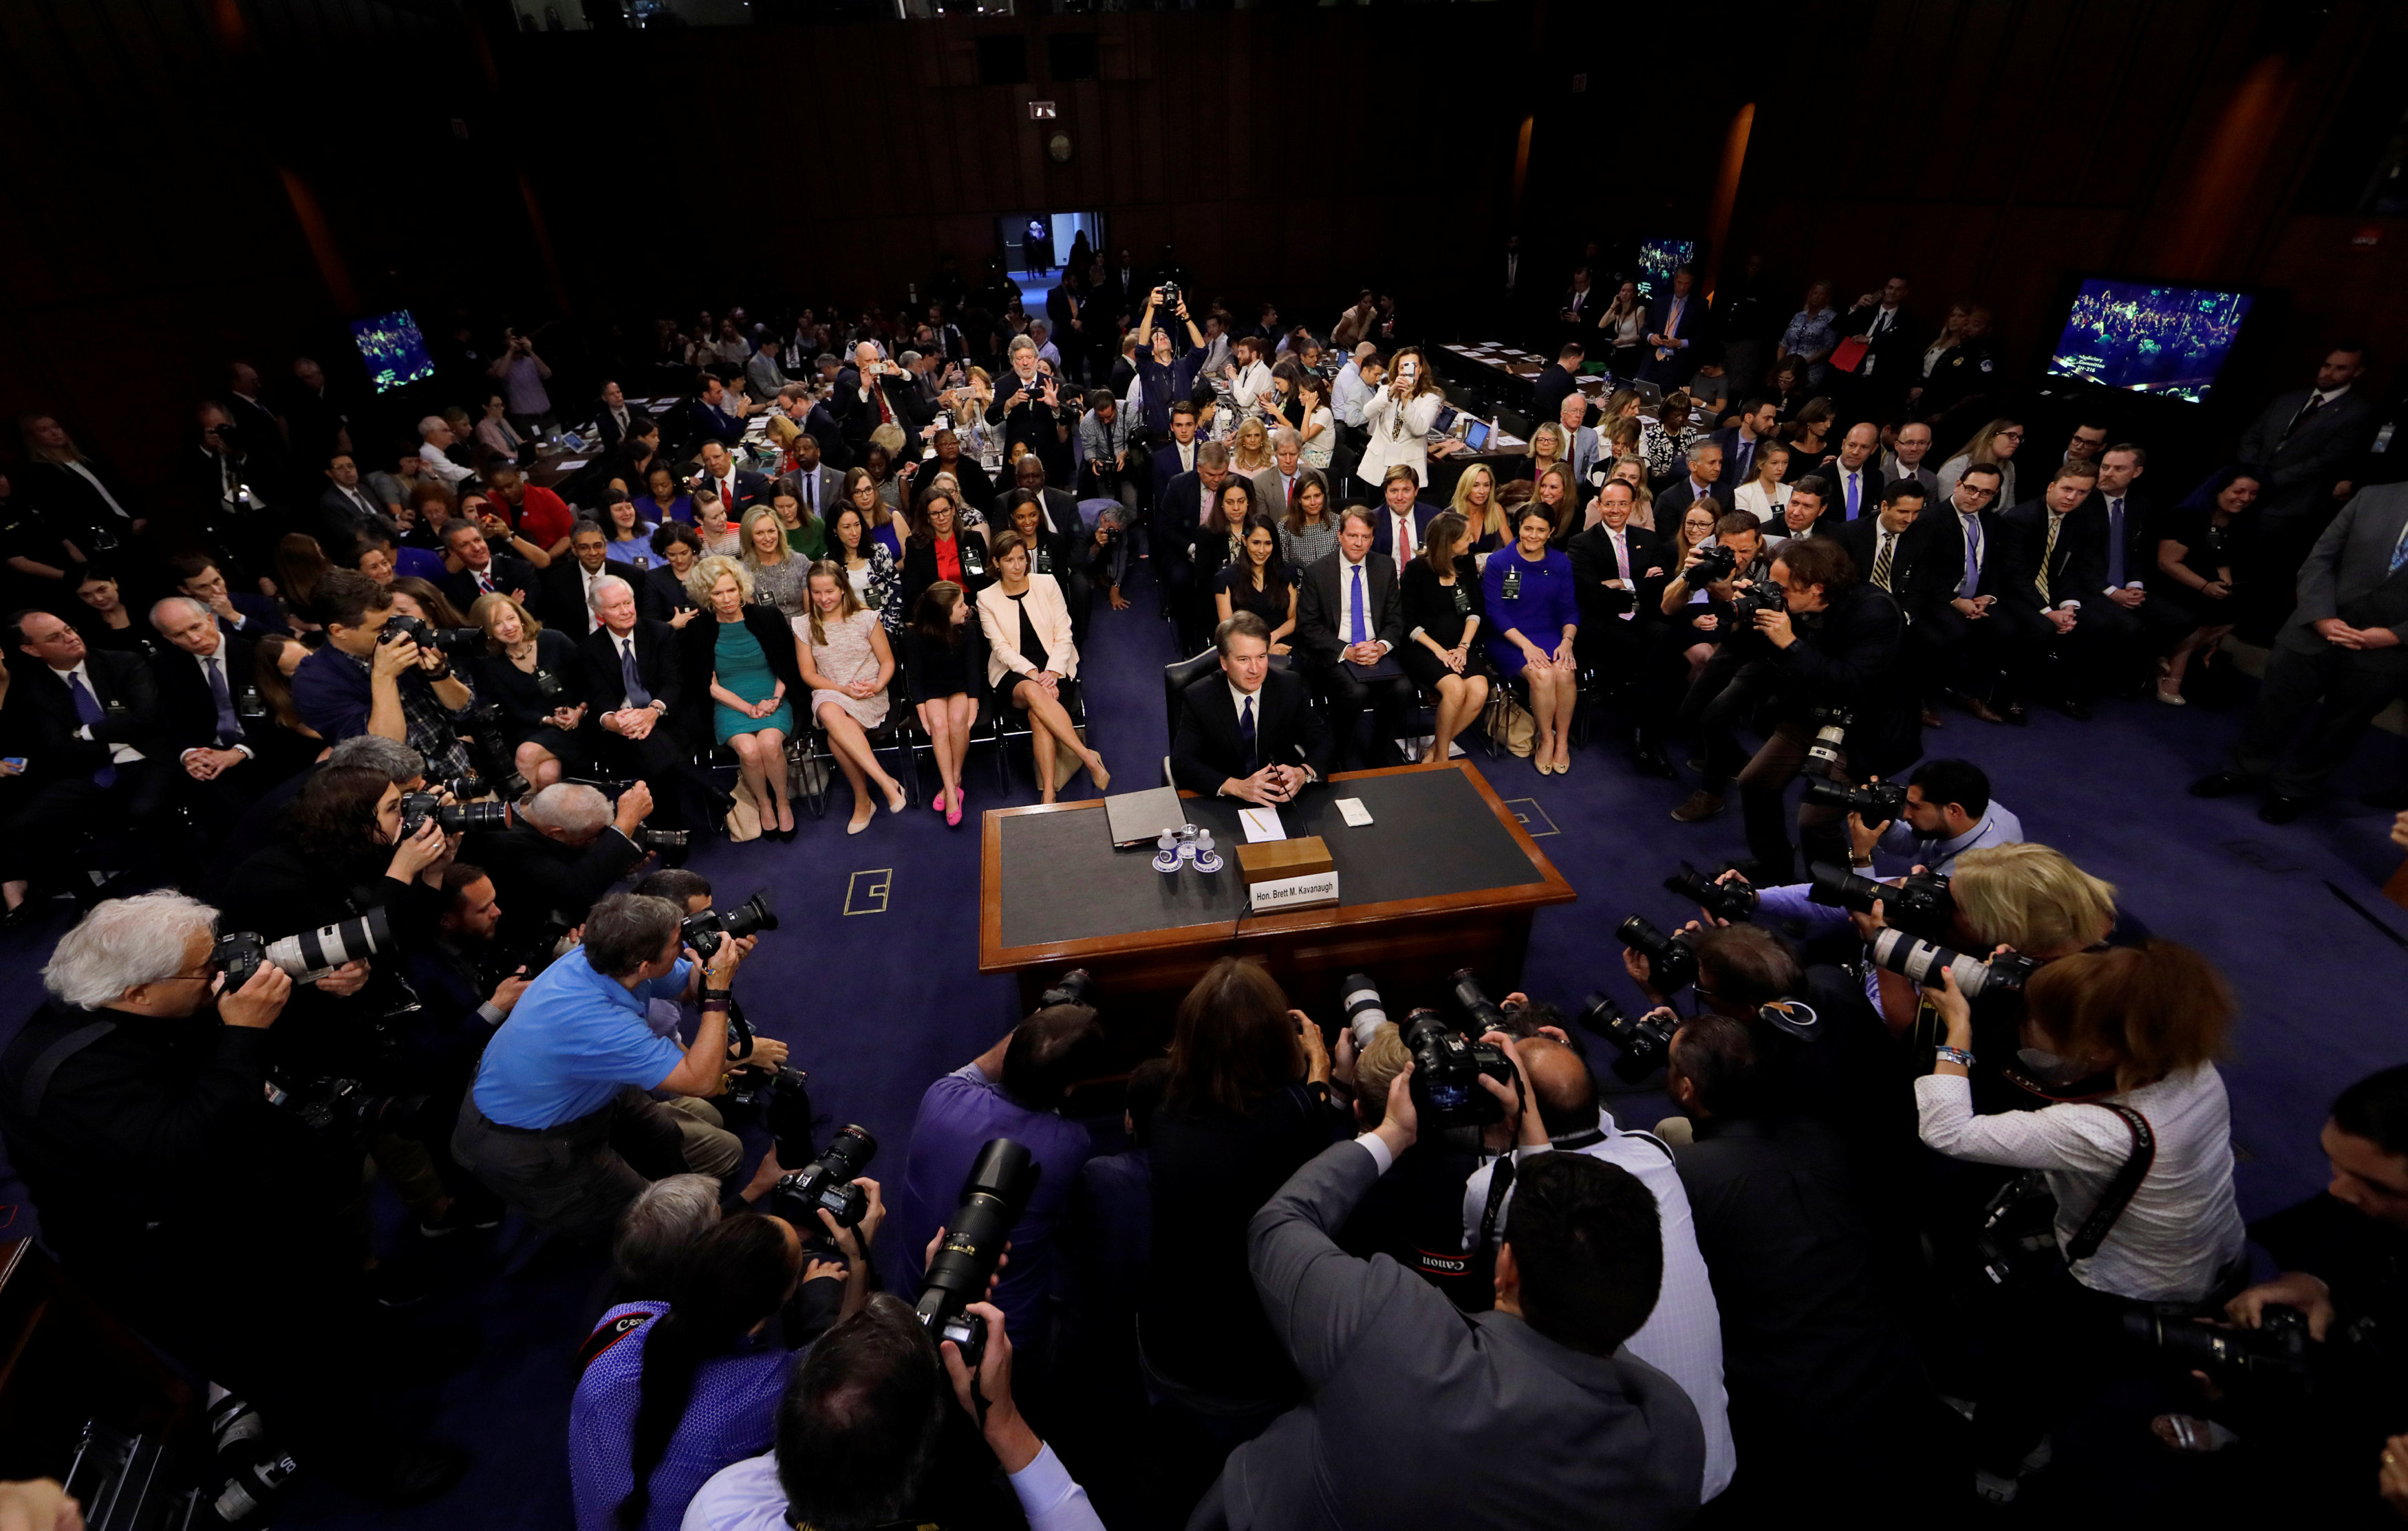 U.S. Supreme Court nominee judge Brett Kavanaugh is surrounded by photographers as he takes his seat for his Senate Judiciary Committee confirmation hearing on Capitol Hill in Washington, U.S., September 4, 2018. REUTERS/Jim Bourg